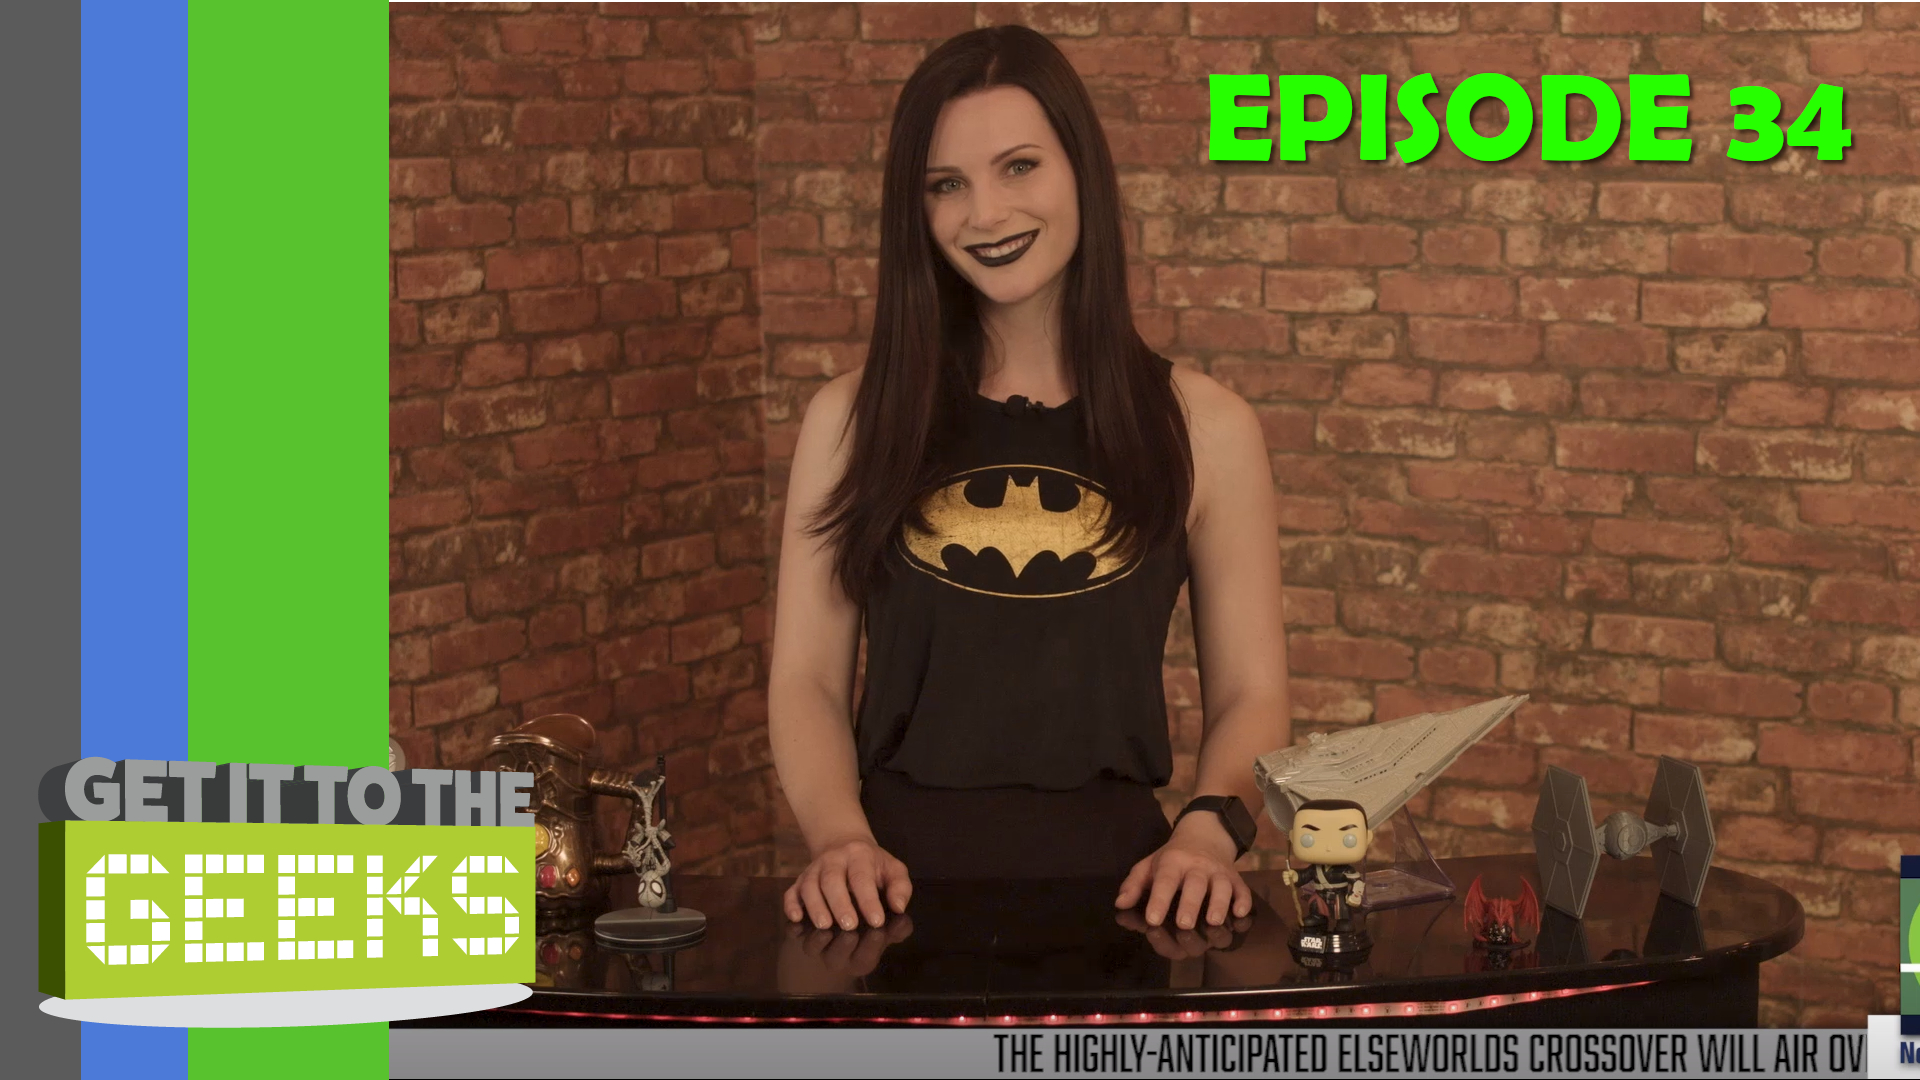 Get It To The Geeks - Episode 34